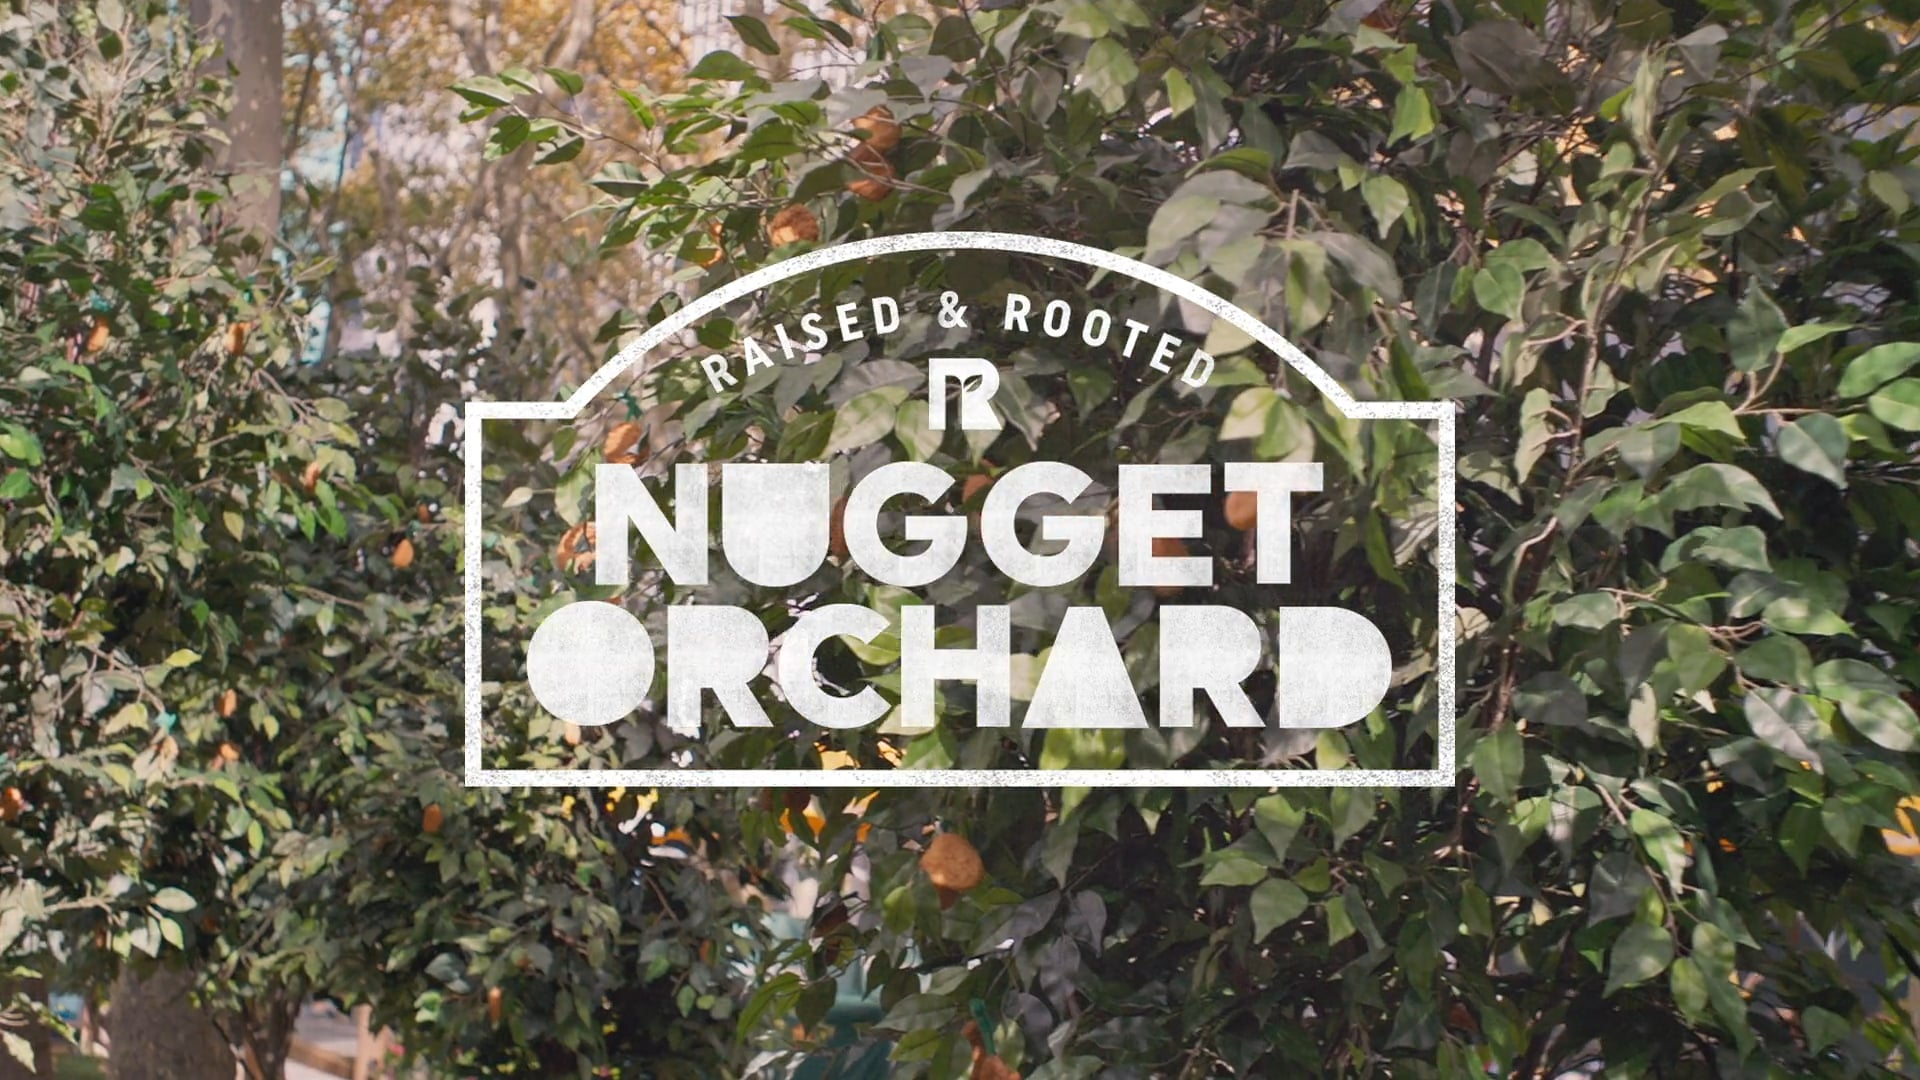 Ryan Andes - Raised and Rooted by Tyson Nugget Season Commercial : TV Final